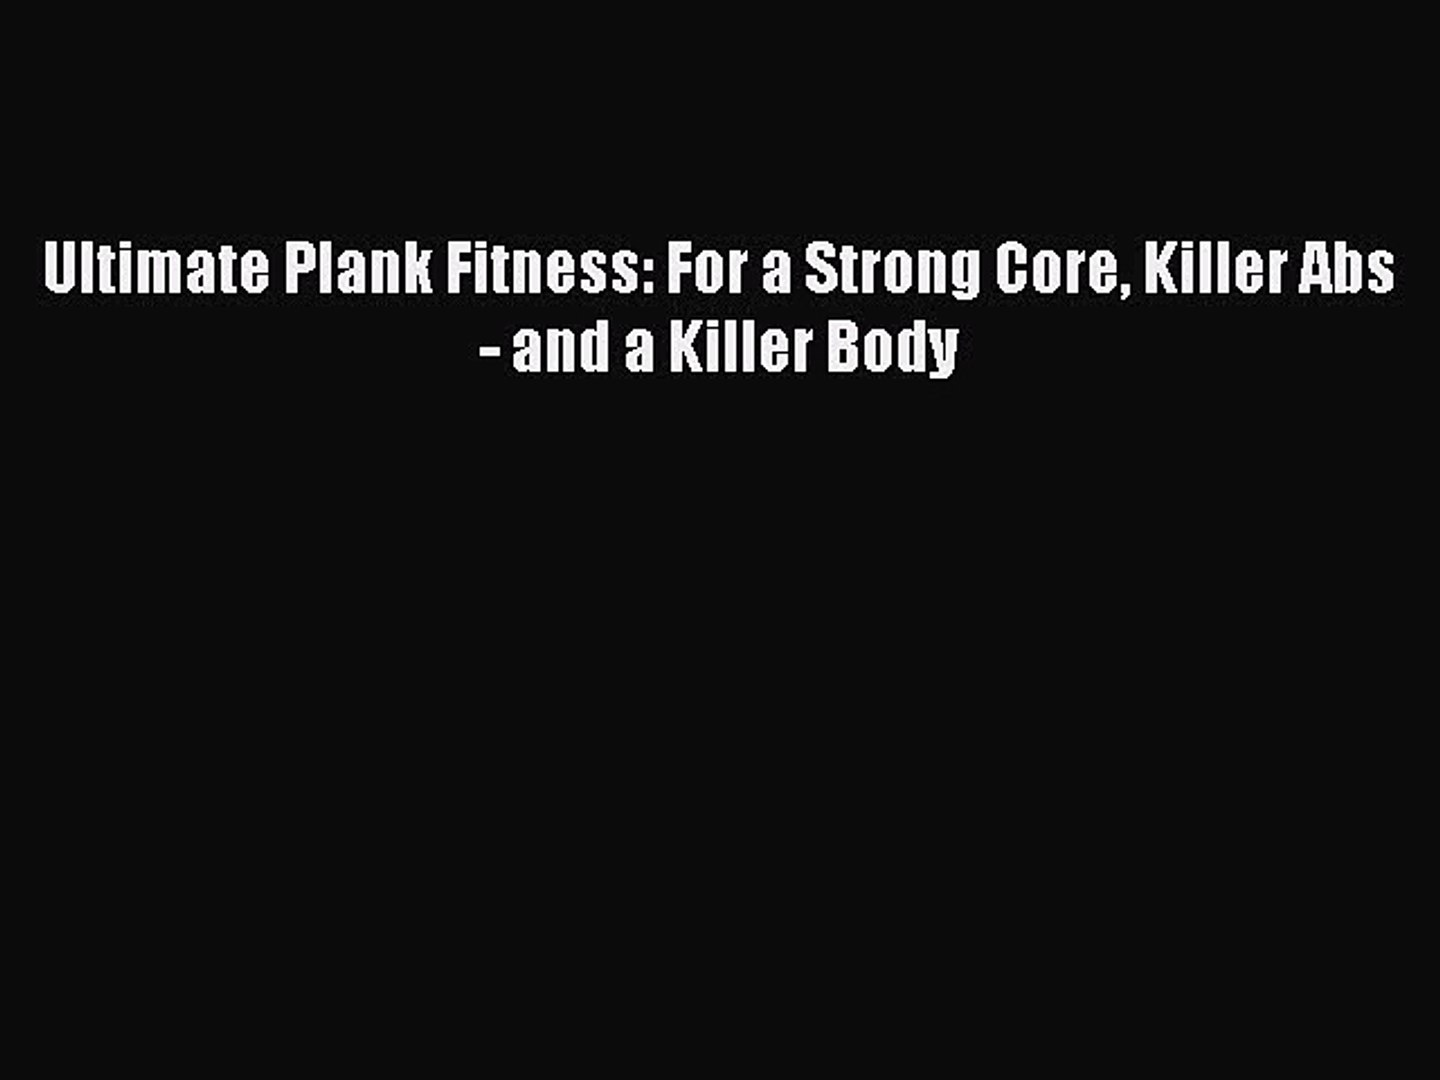 Ultimate Plank Fitness: For a Strong Core Killer Abs - and a Killer Body  Free Books